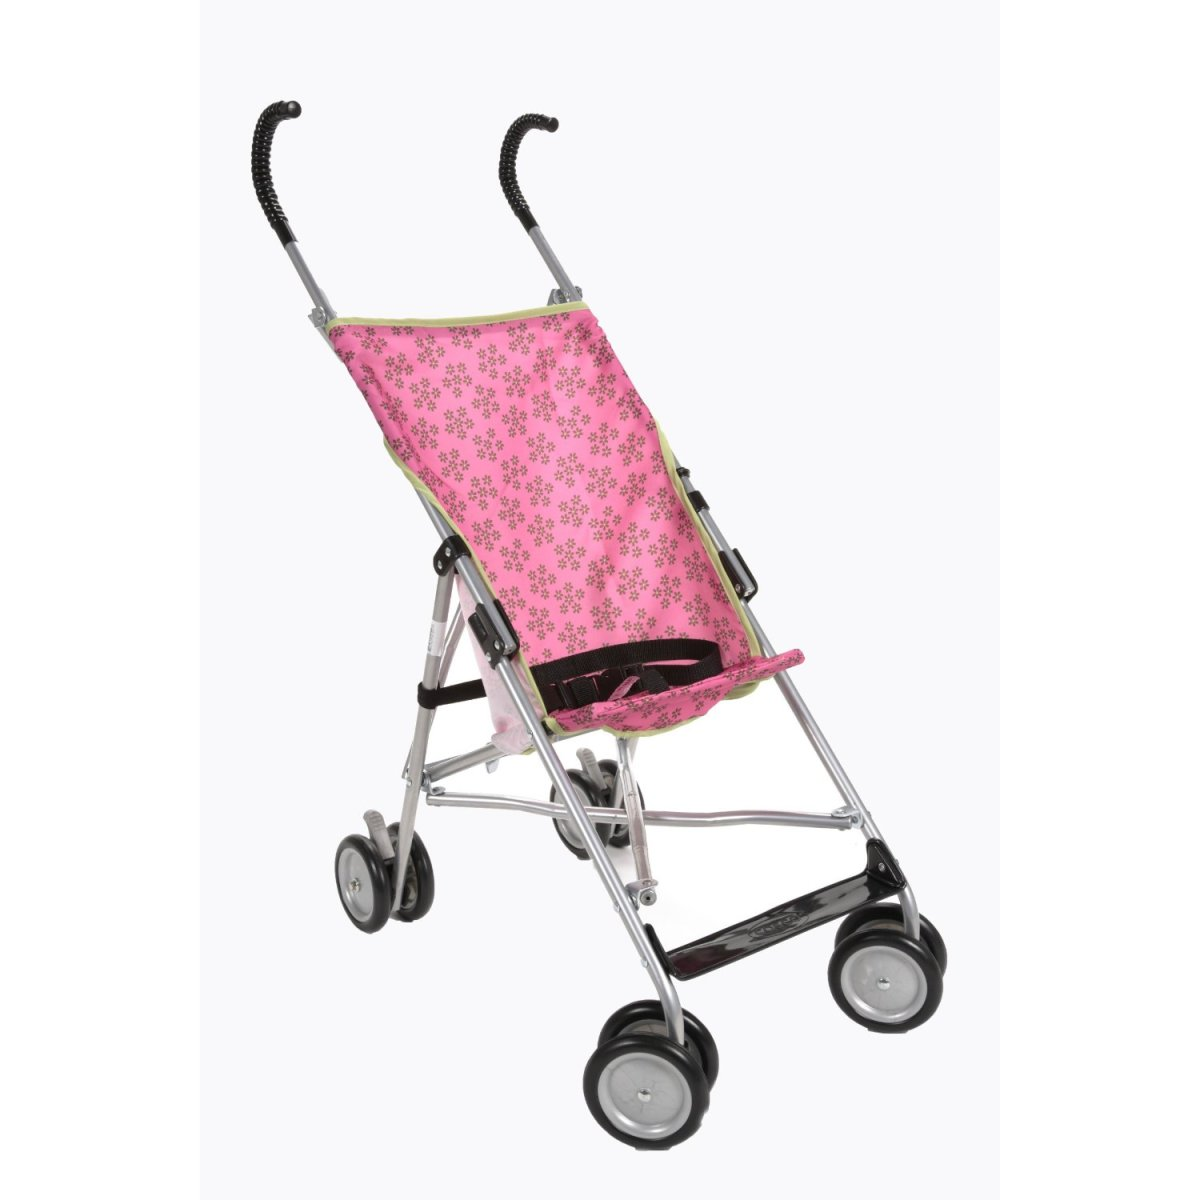 Cosco Umbrella Stroller Nicola